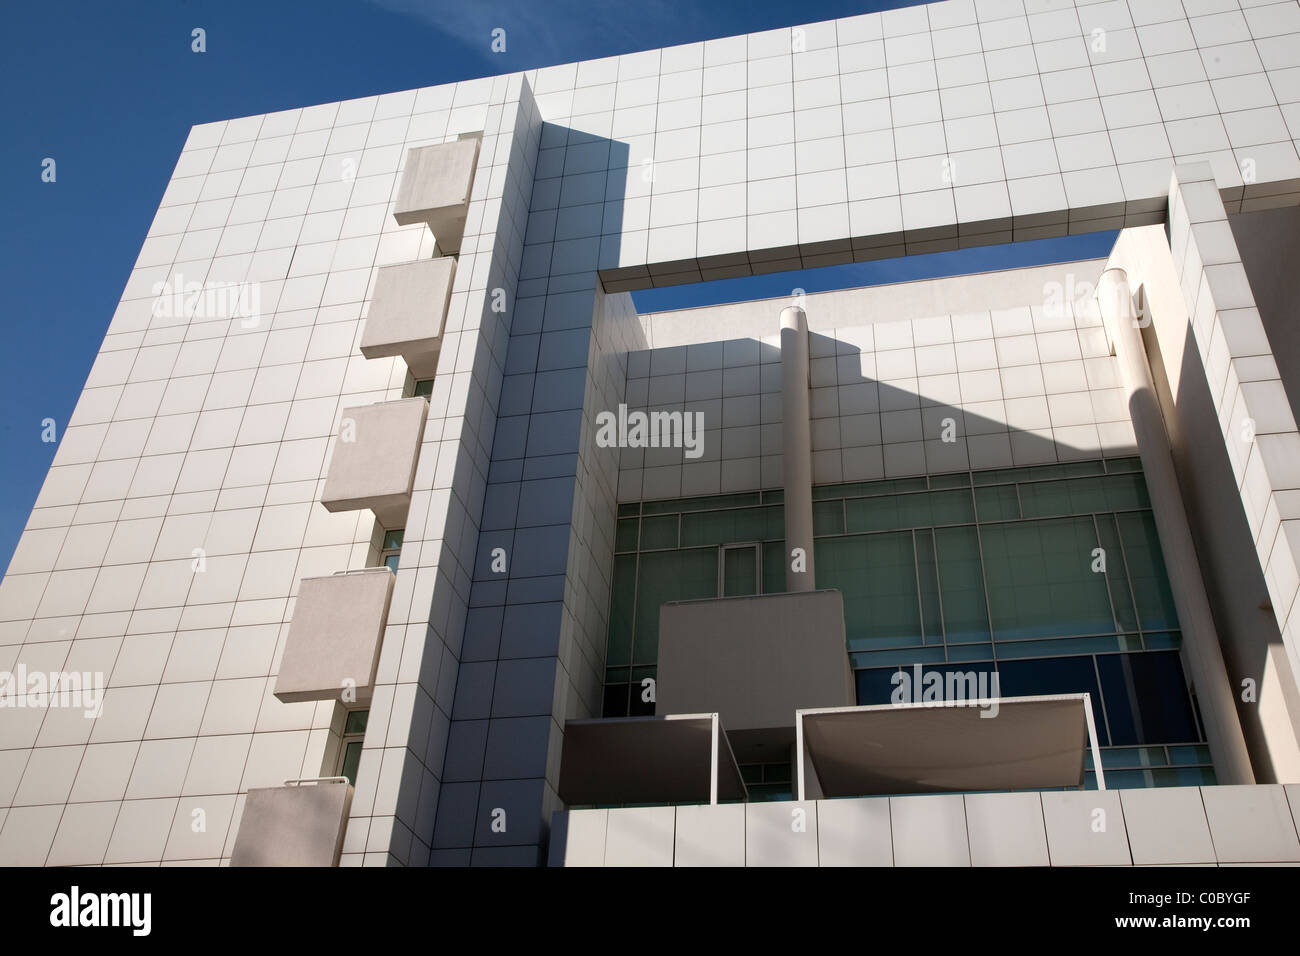 Facade of MACBA Contemporary Art Museum, Barcelona, Catalonia, Spain - Stock Image